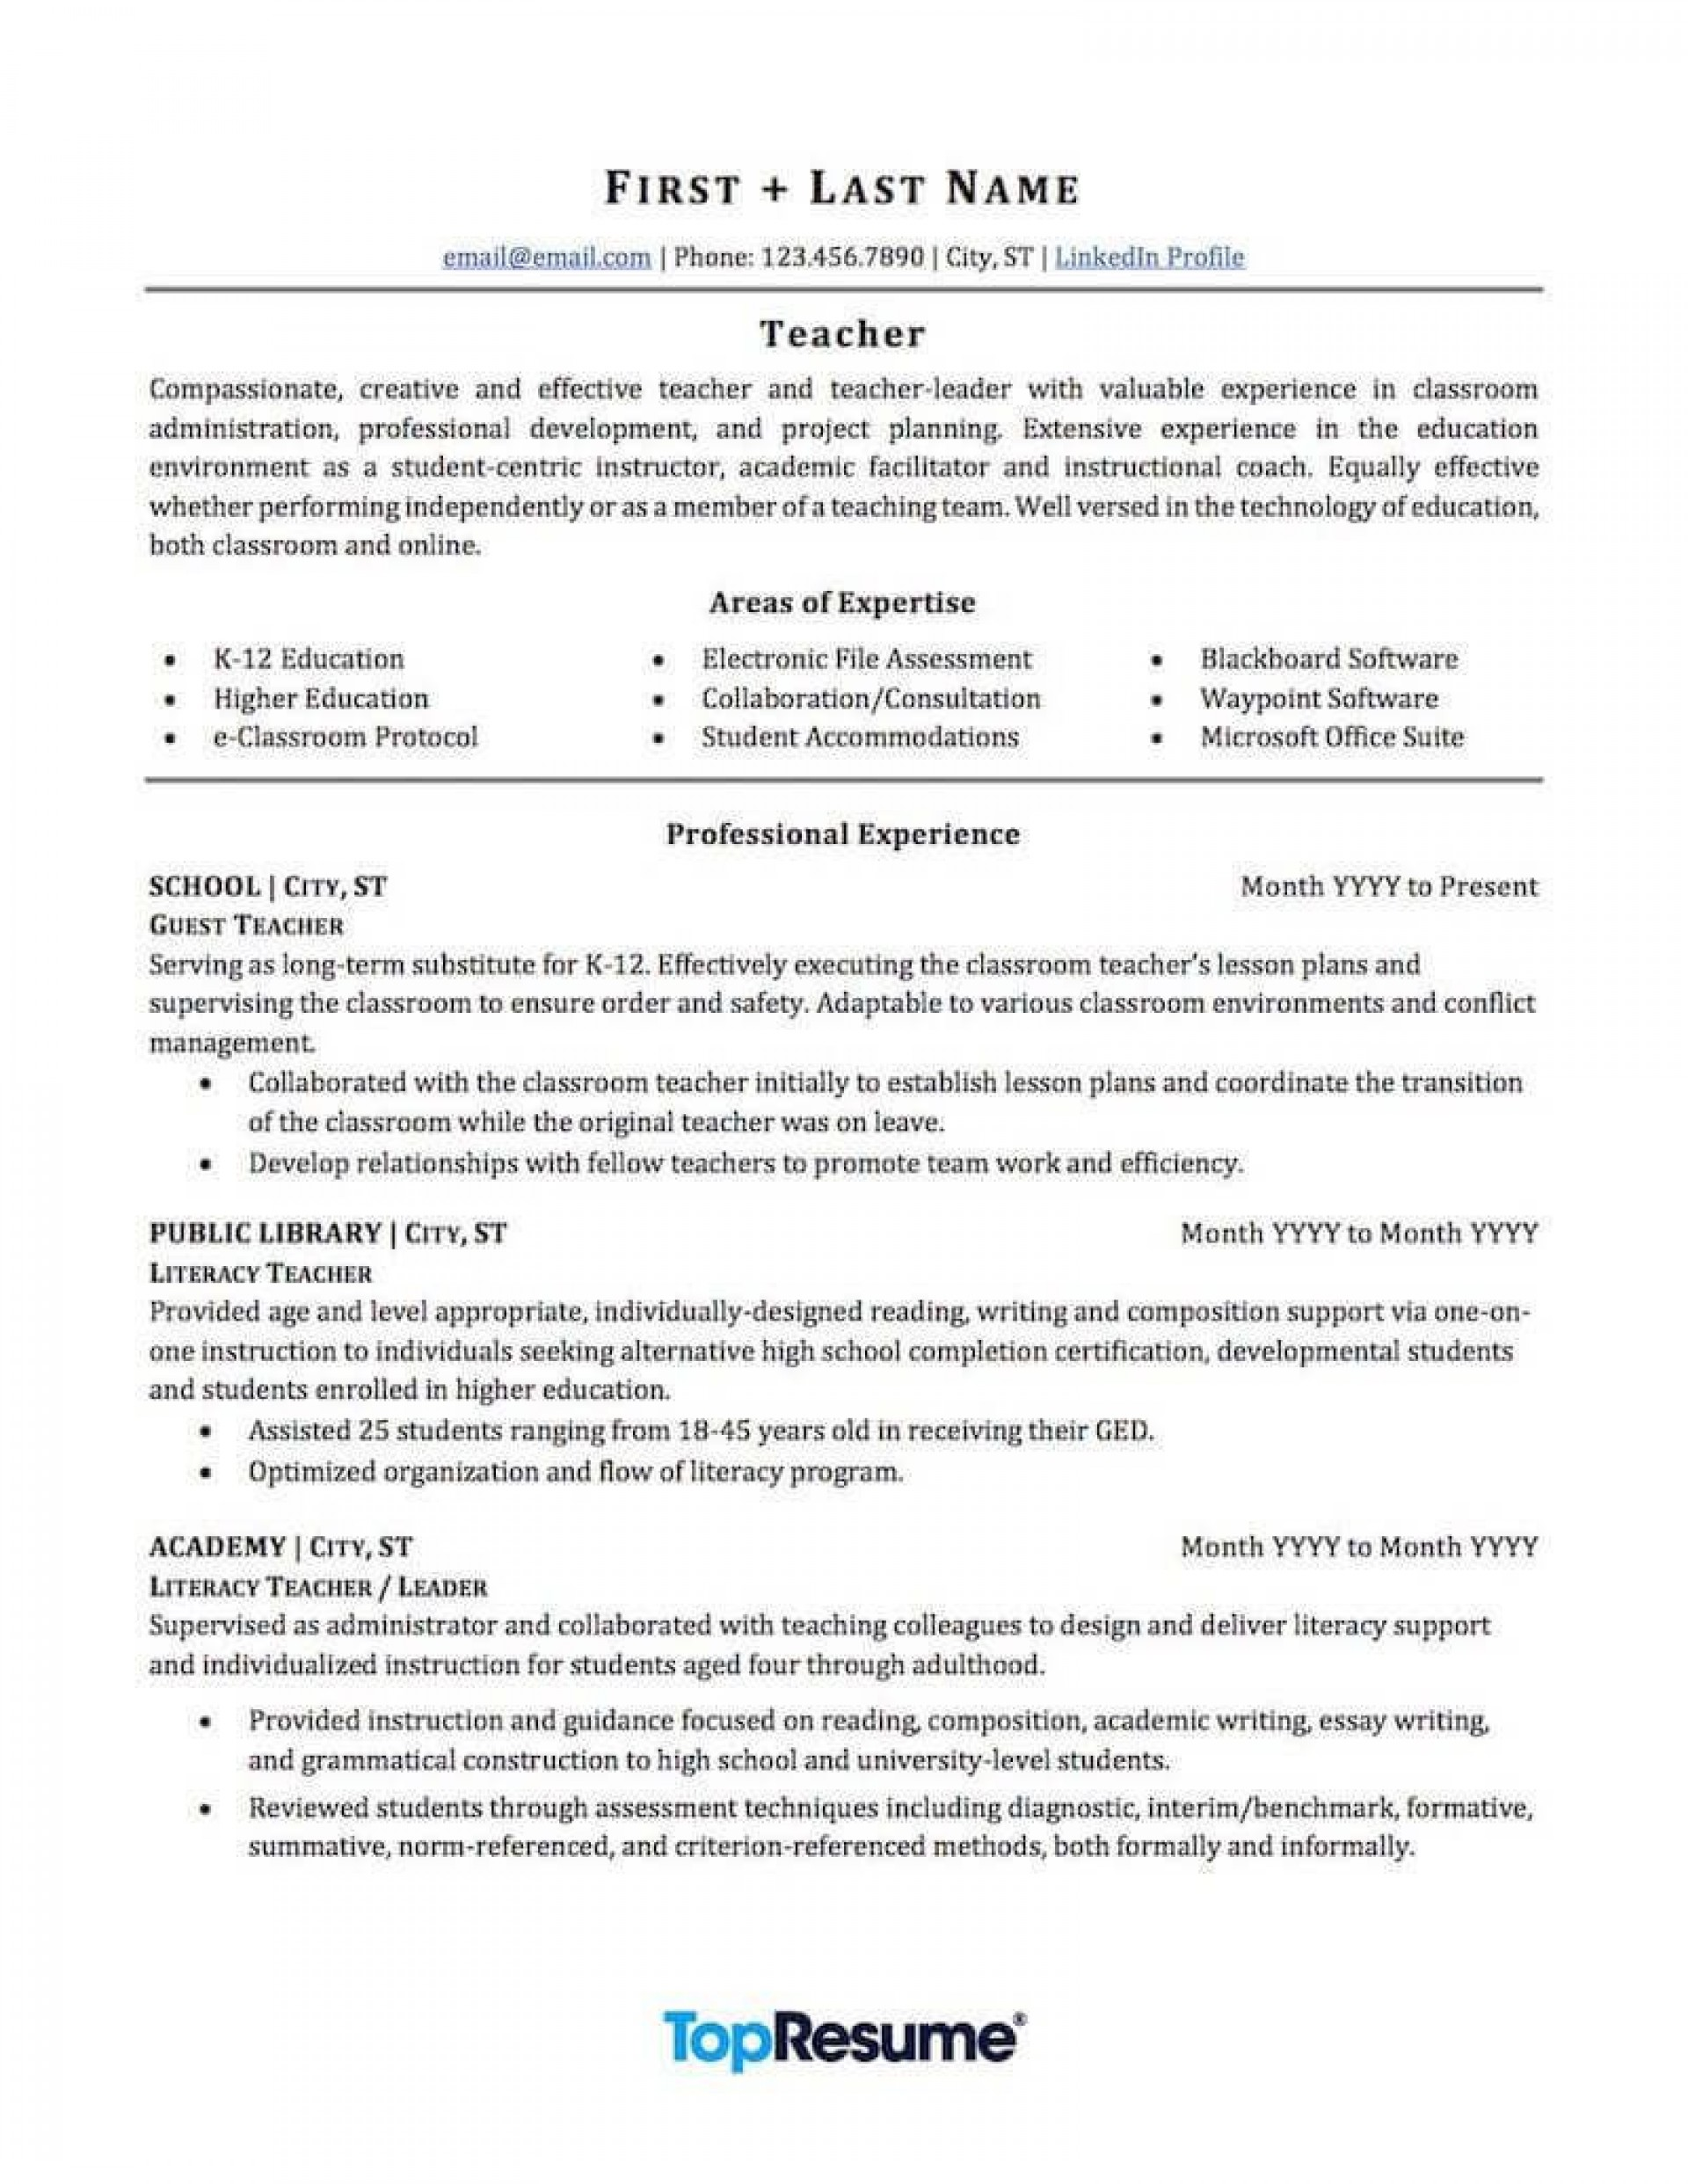 005 Awful Good Resume For Teaching Job High Resolution  Sample With Experience Pdf Fresher In India1920